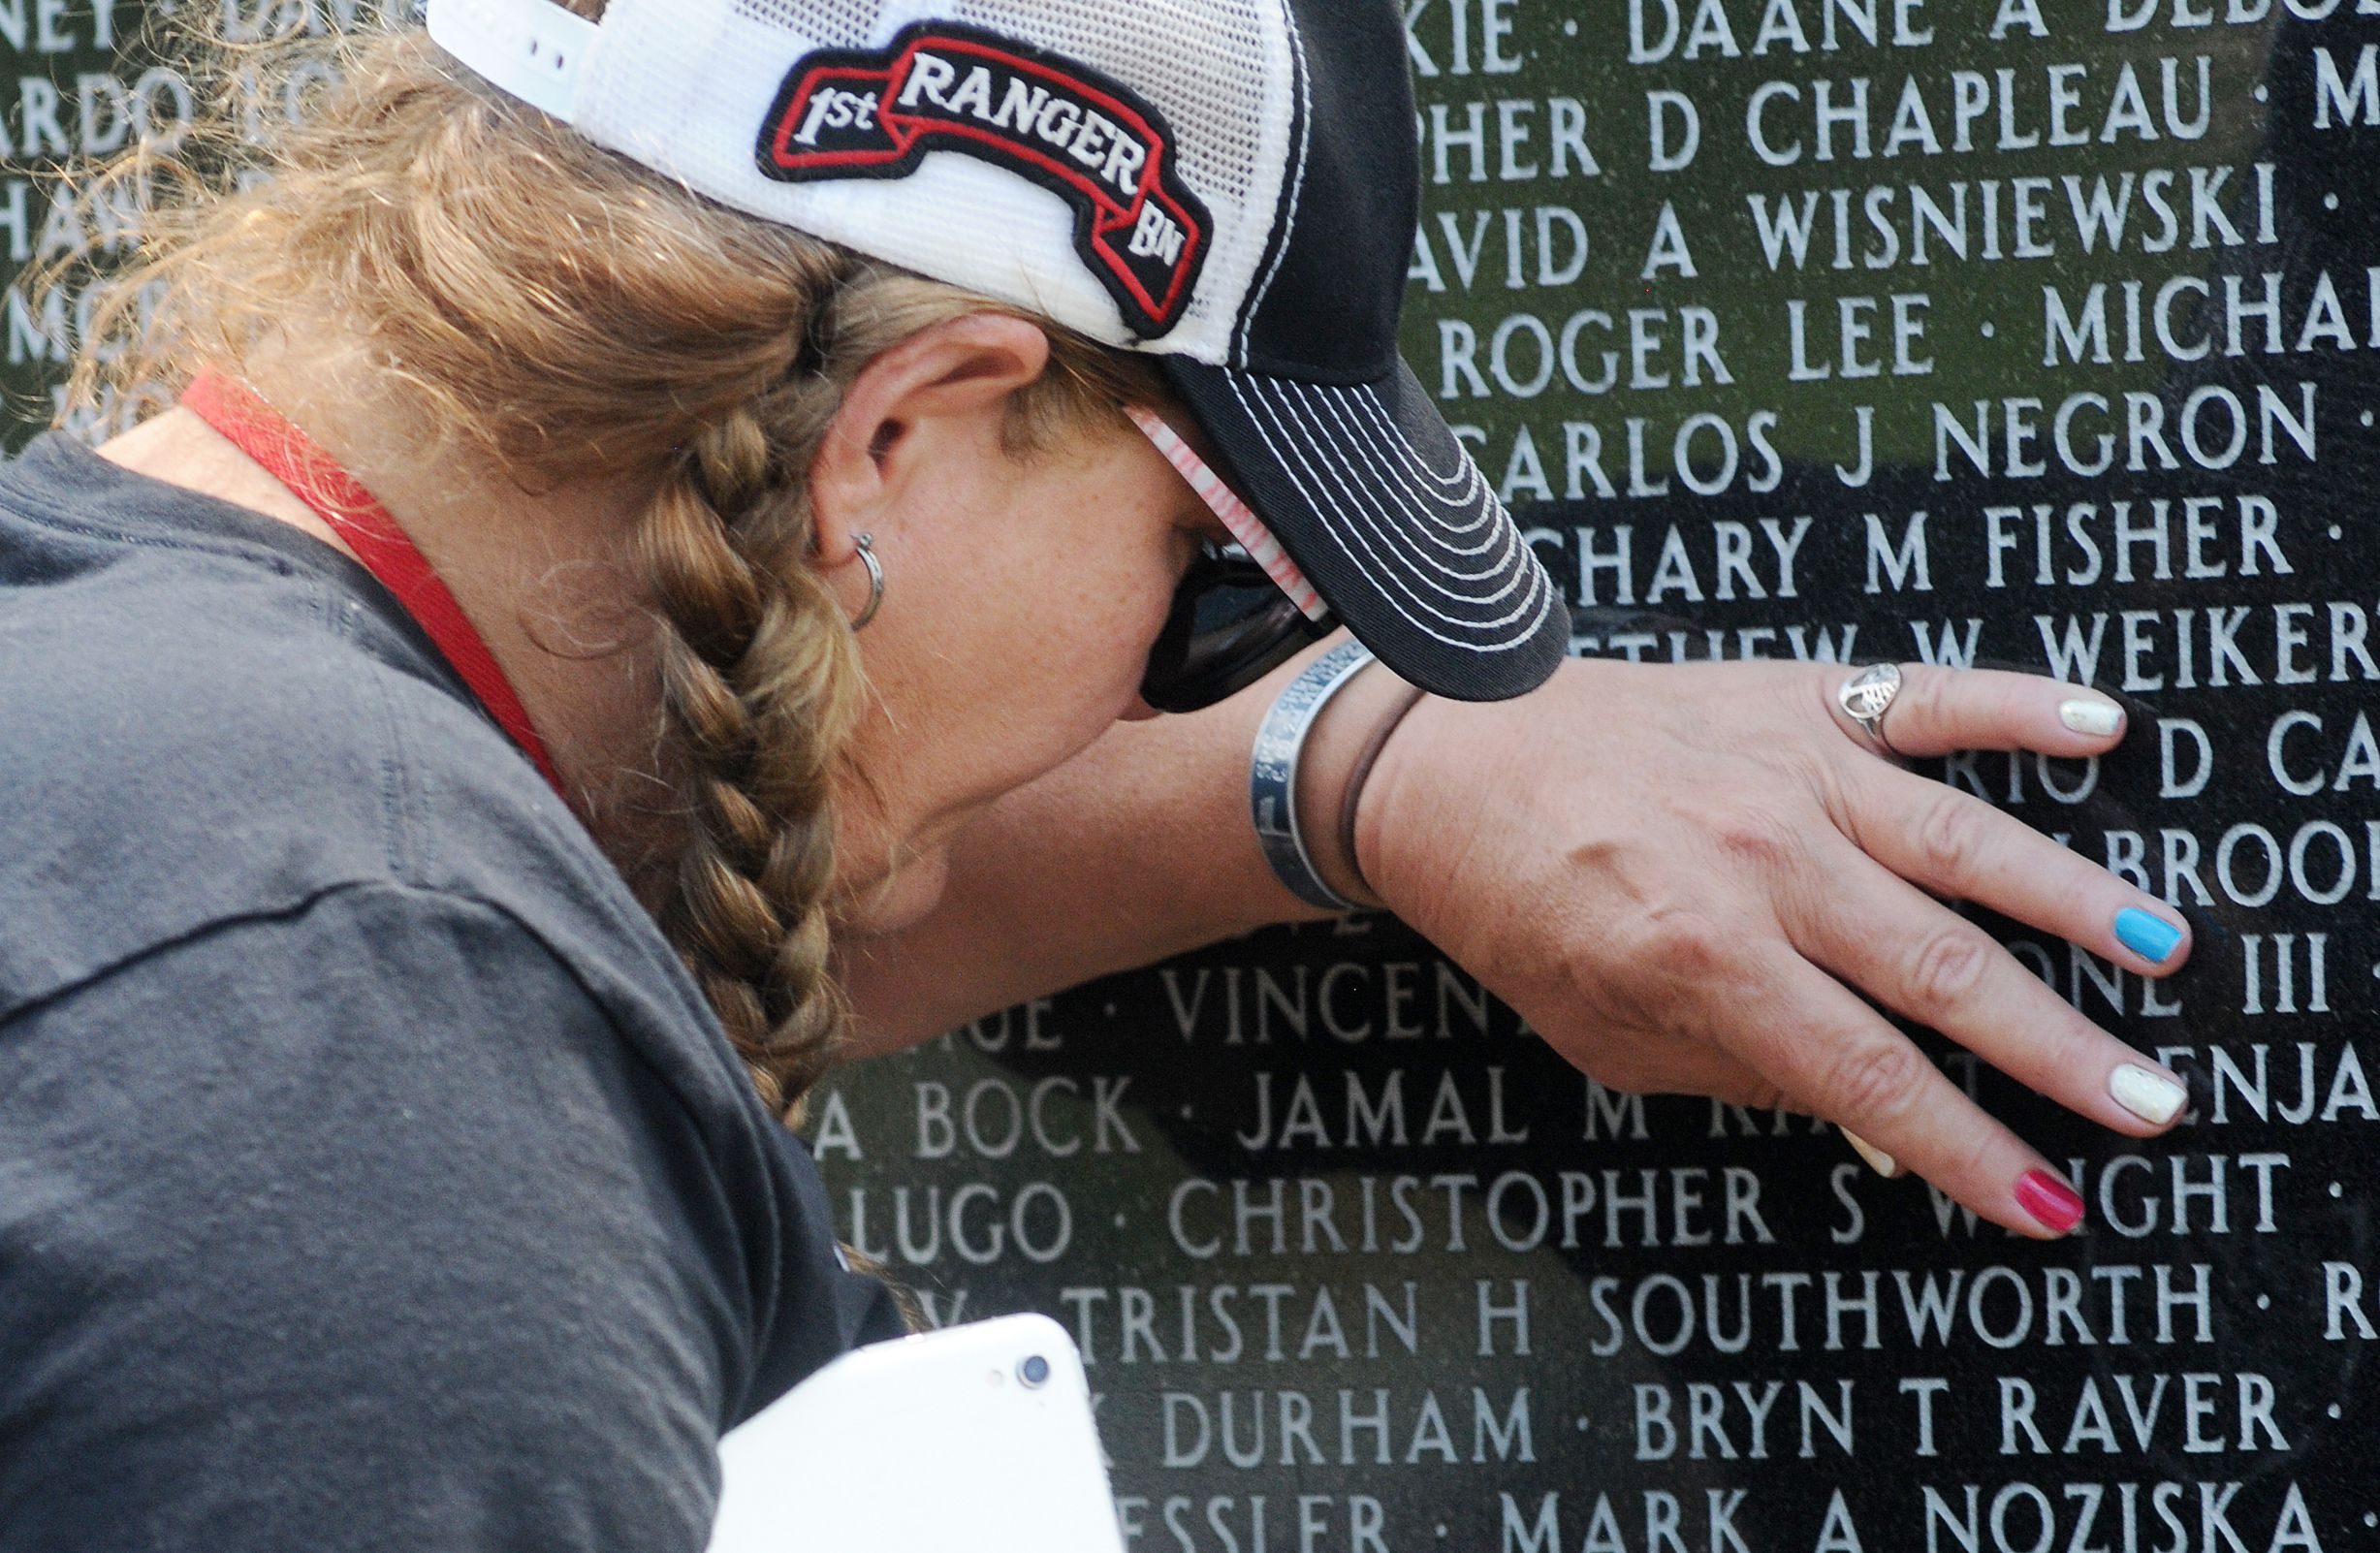 A Gold Star mom, Linda Wright-Dennis, of Jeffersonville, ind., runs her fingers over the engraving of her son's name, Army Spc. Christopher S. Wright, at the Middle East Conflicts Wall in Marseilles Saturday. He was killed in action on Aug. 19, 2010, and this was her first time seeing his name on the wall.